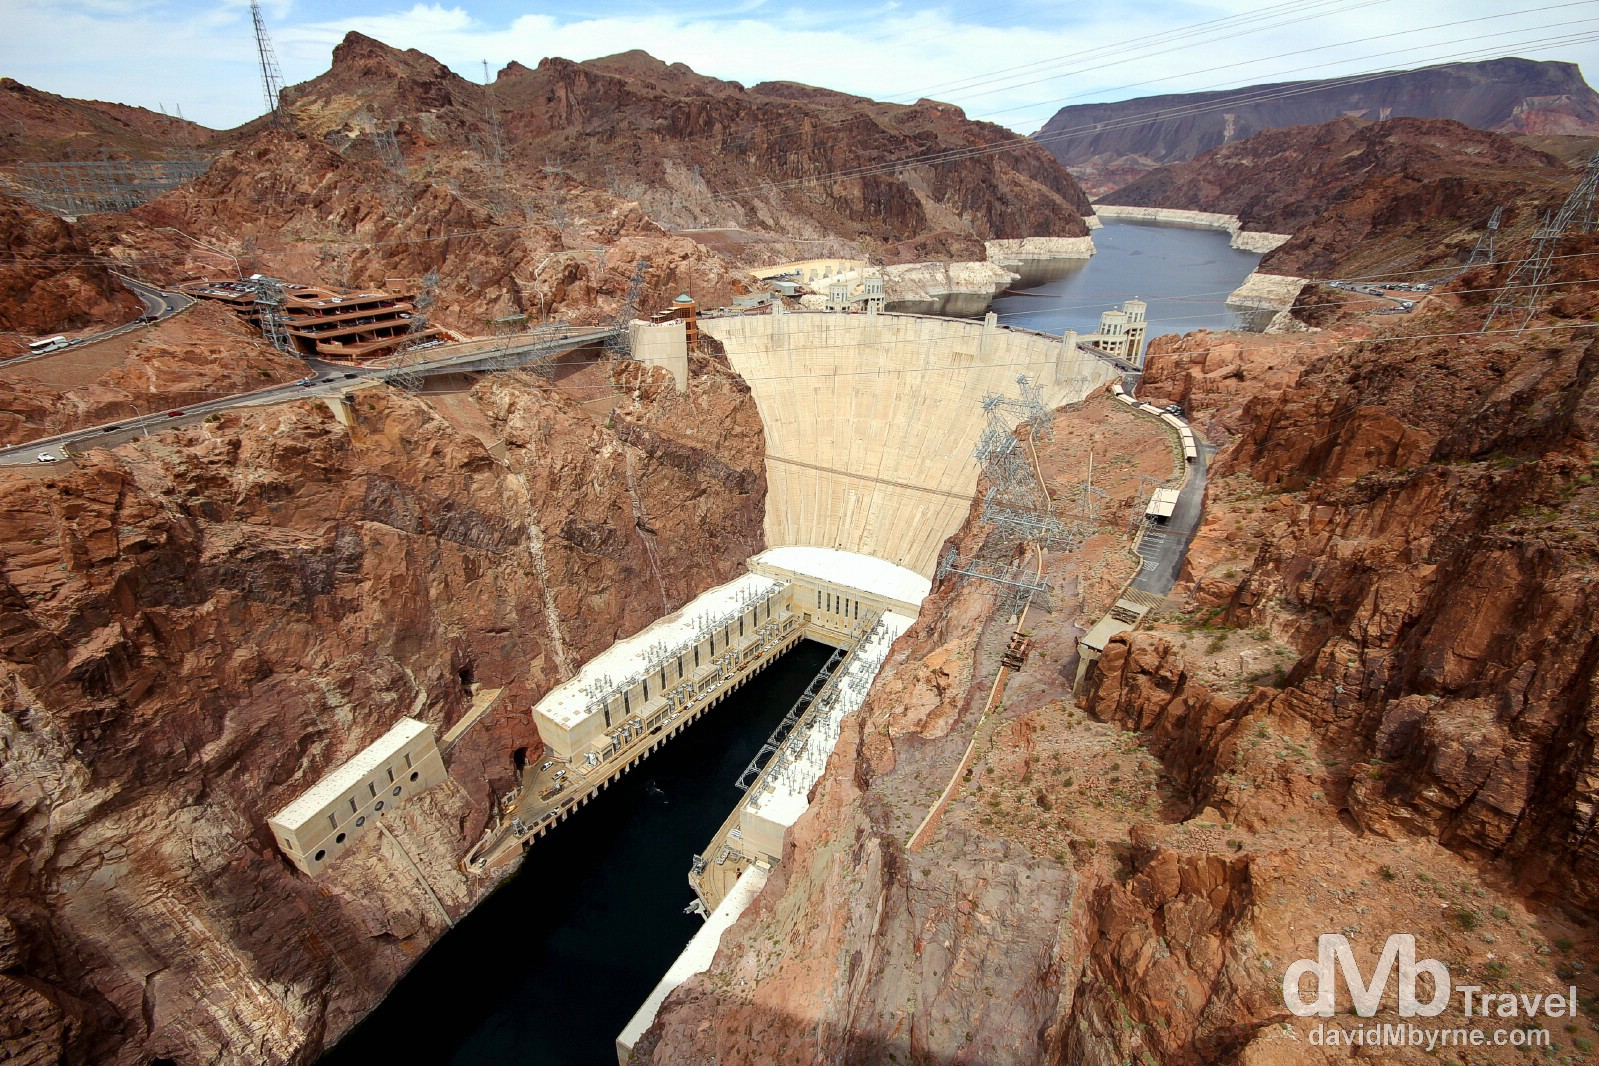 The Hoover Dam as seen from the new Mike O'Callaghan-Pat Tillman Memorial Bridge. On the Nevada (left) & Arizona (right) border, USA. April 6th 2013.